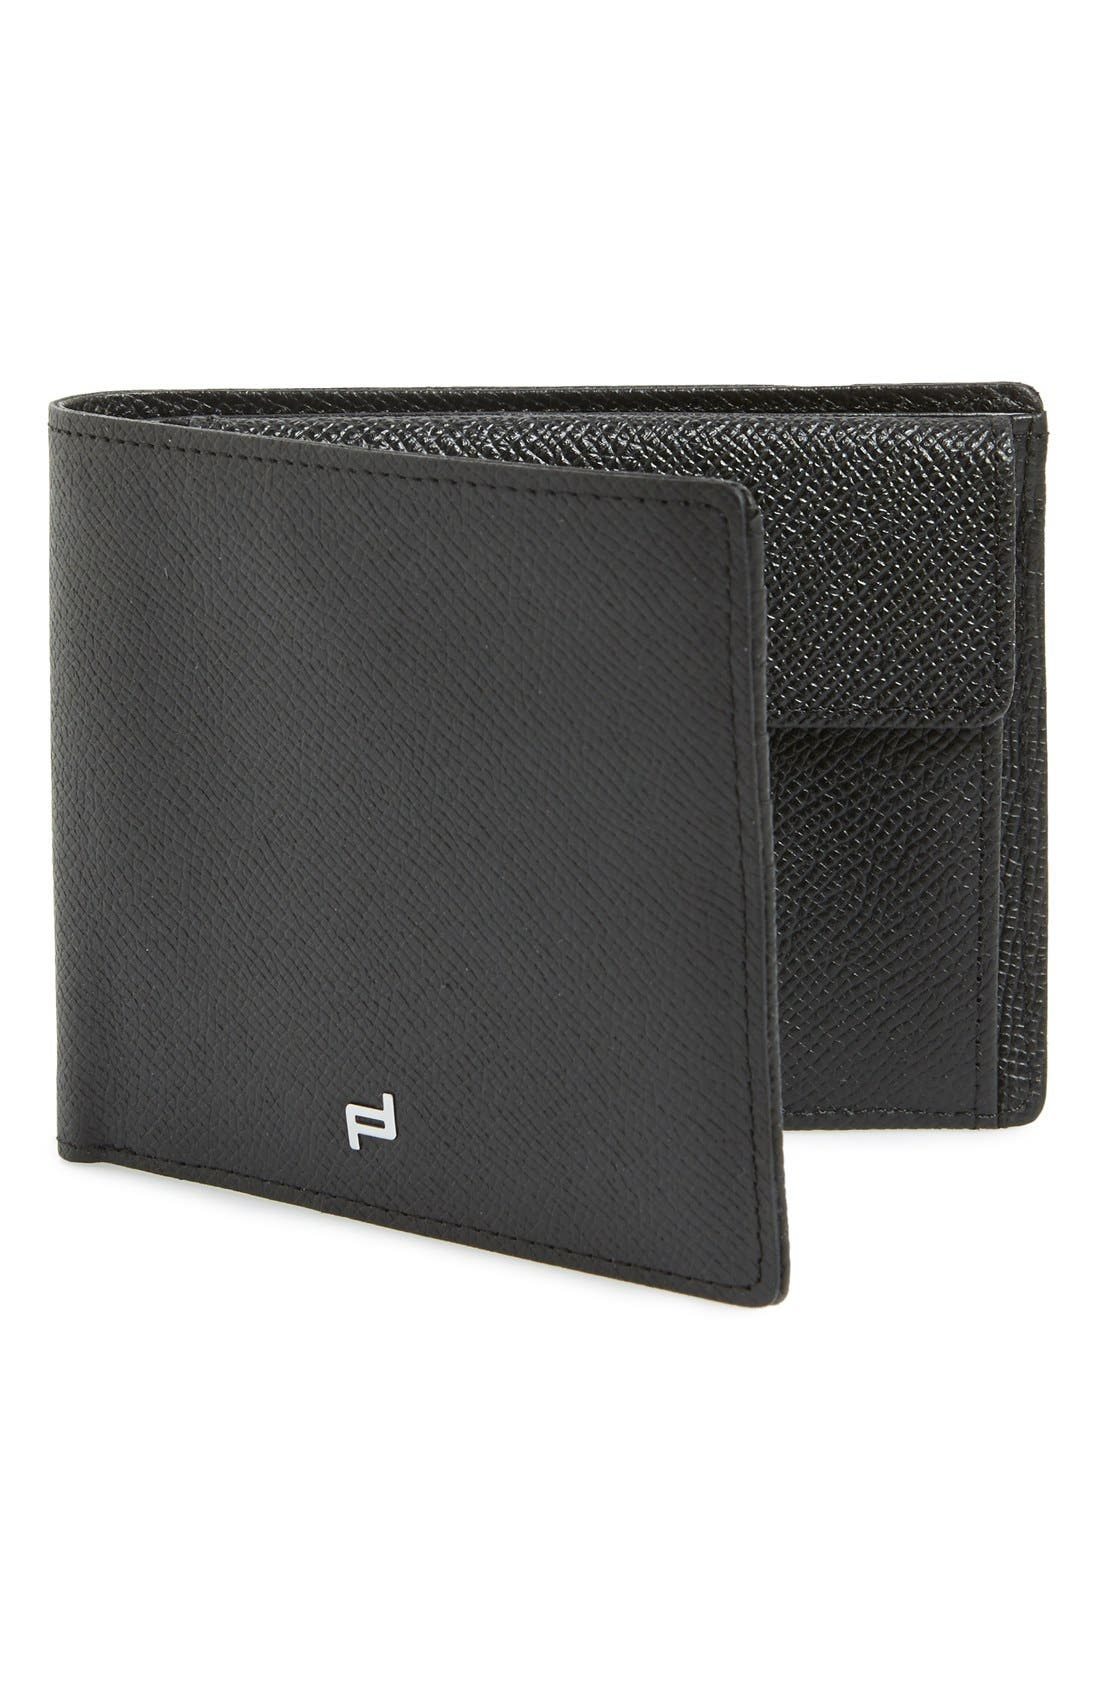 'French Classic 3.0' Leather Billfold Wallet,                         Main,                         color,